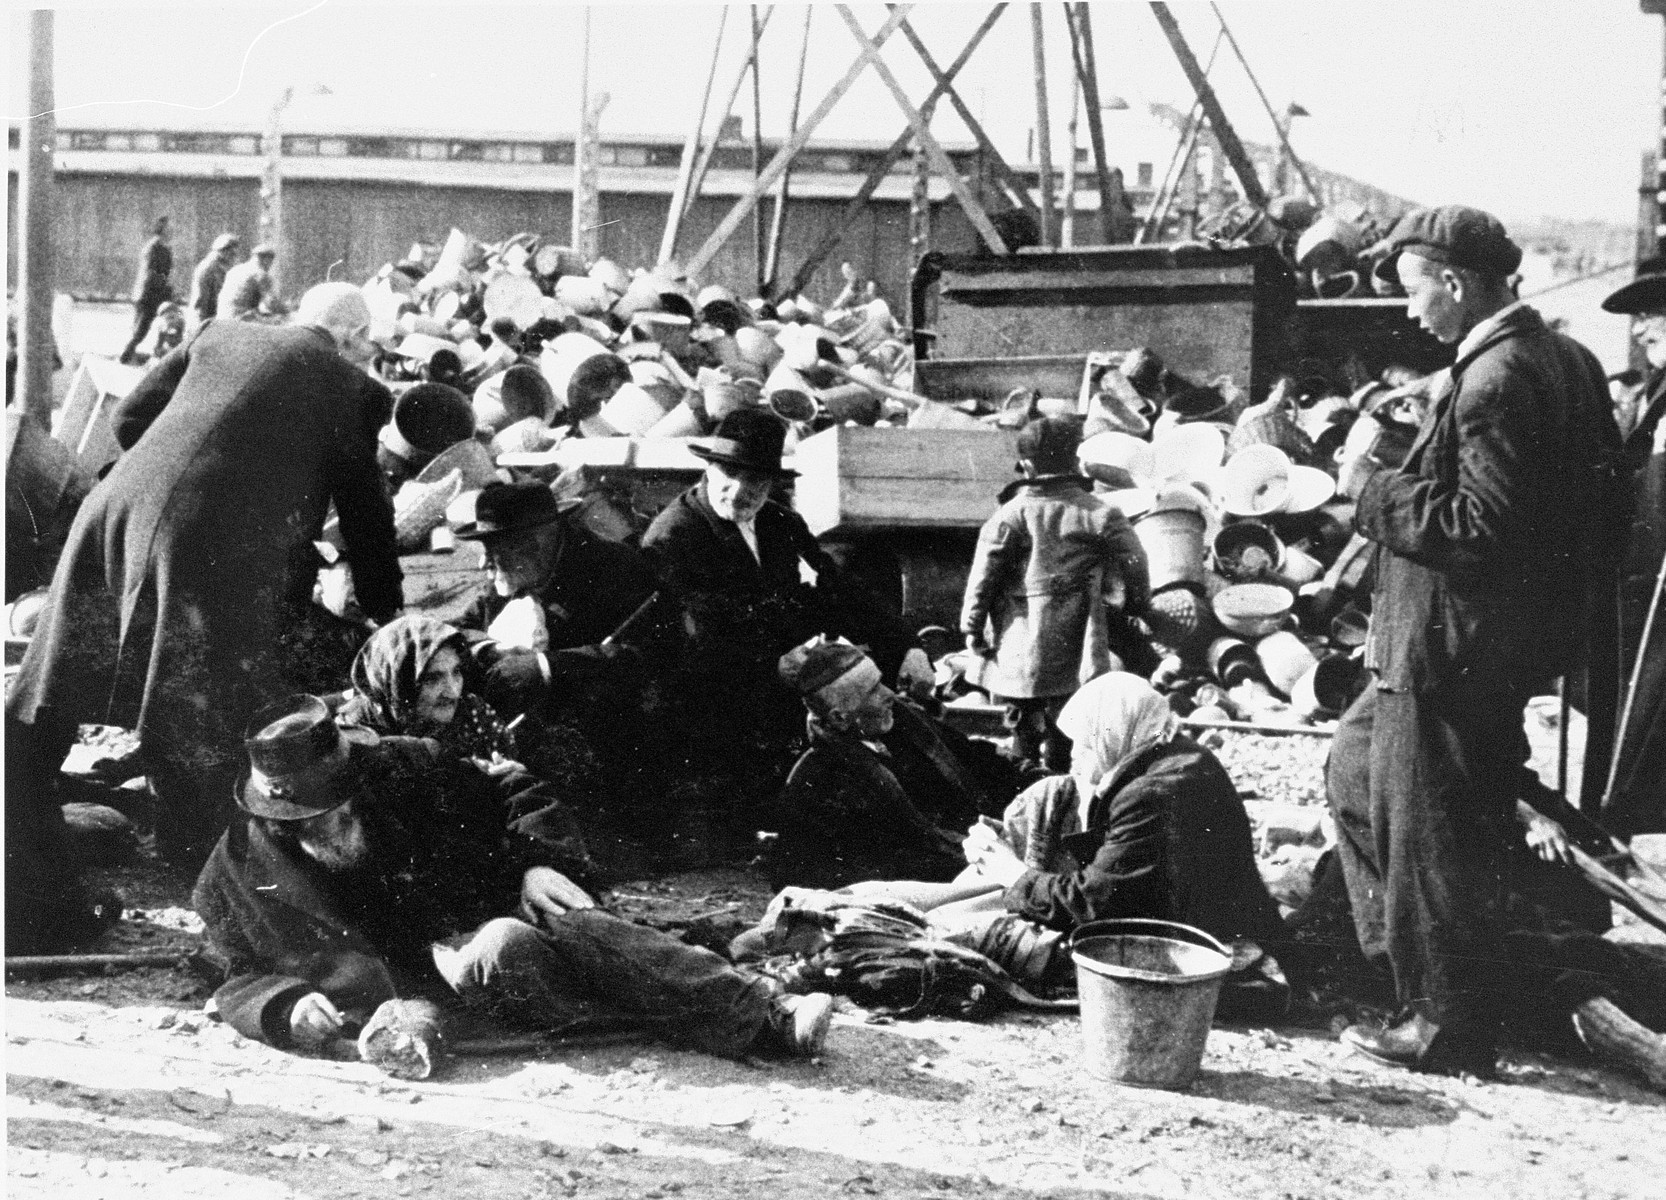 Elderly Jews from Subcarpathian Rus who have been selected for death at Auschwitz-Birkenau wait to be transported to the gas chambers.  Standing on the far right is Mendel, the cousin of Lili Jacob.